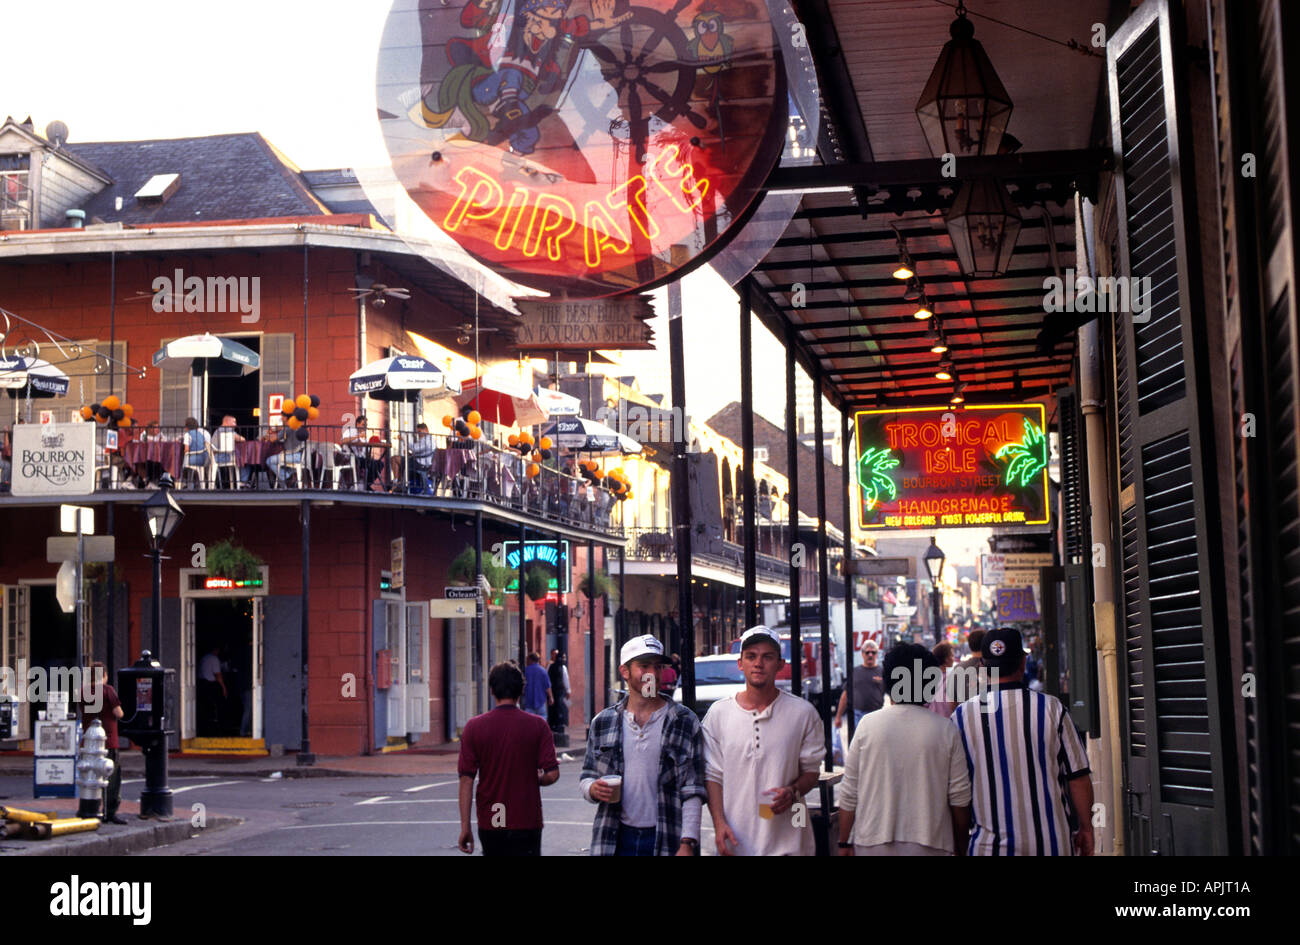 The 15 Best Places with Live Music in French Quarter, New ...